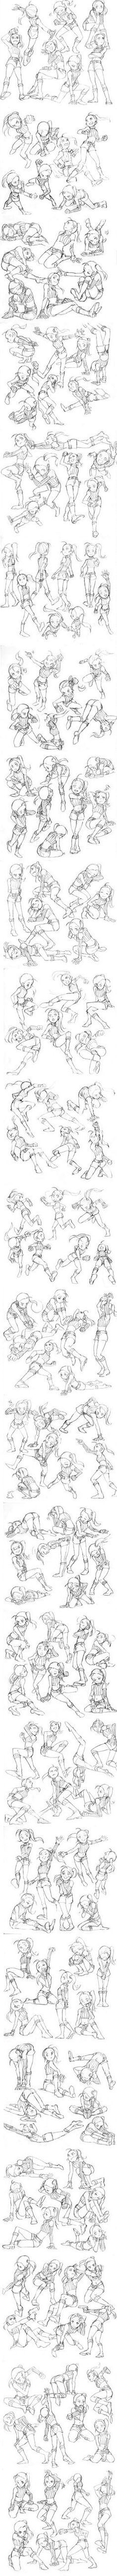 Dynamic cartoon poses for a female character. Super cool!: